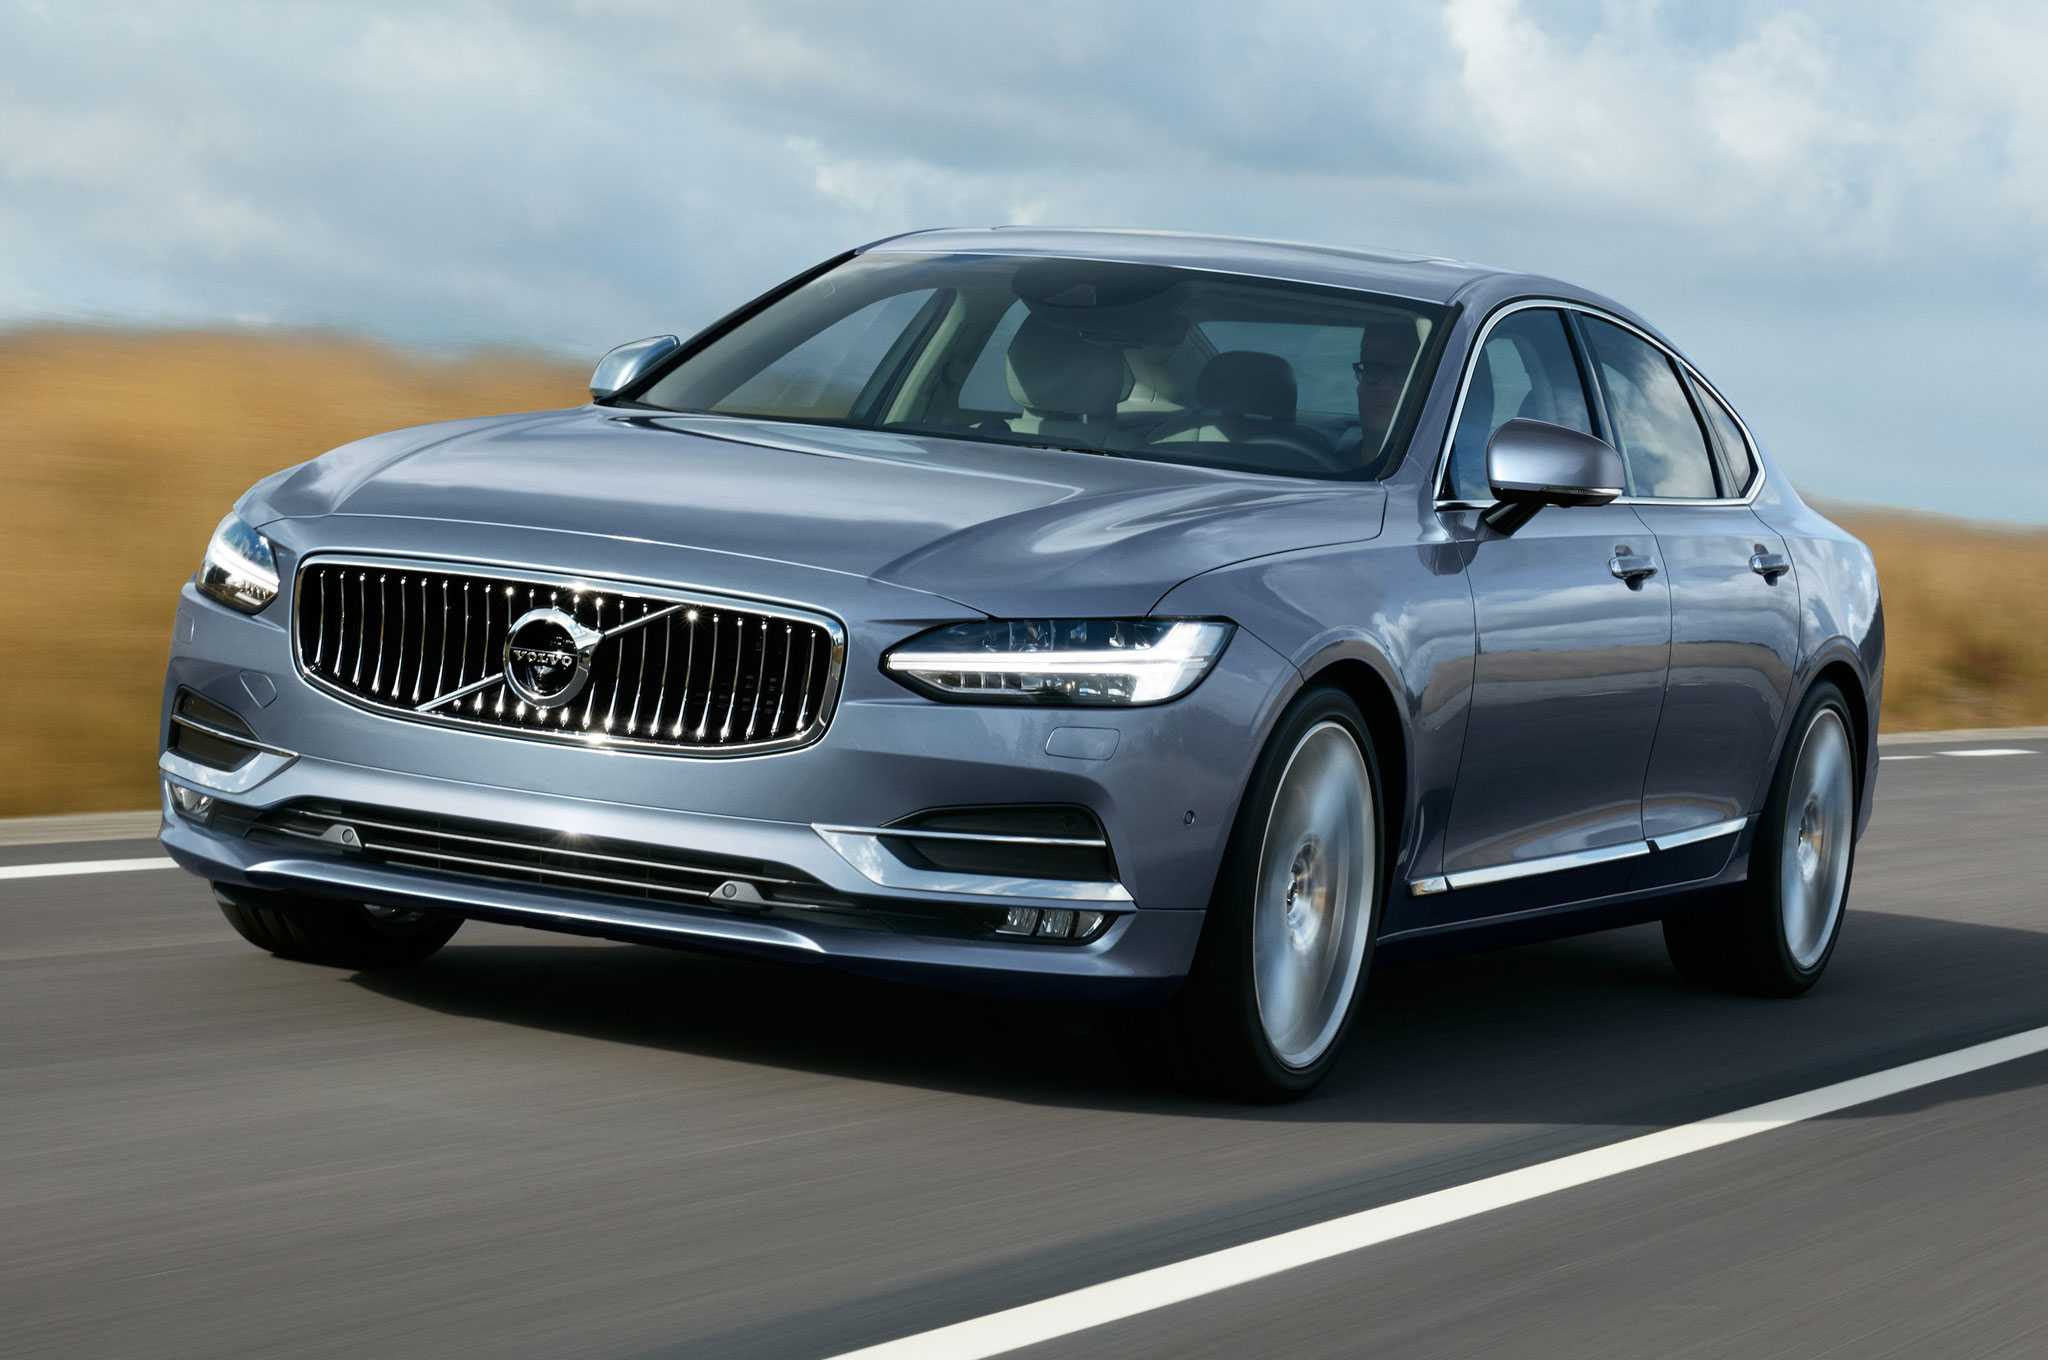 Volvo S90 and V90 Polestar Editions Aiming To Reach 600 Horsepower